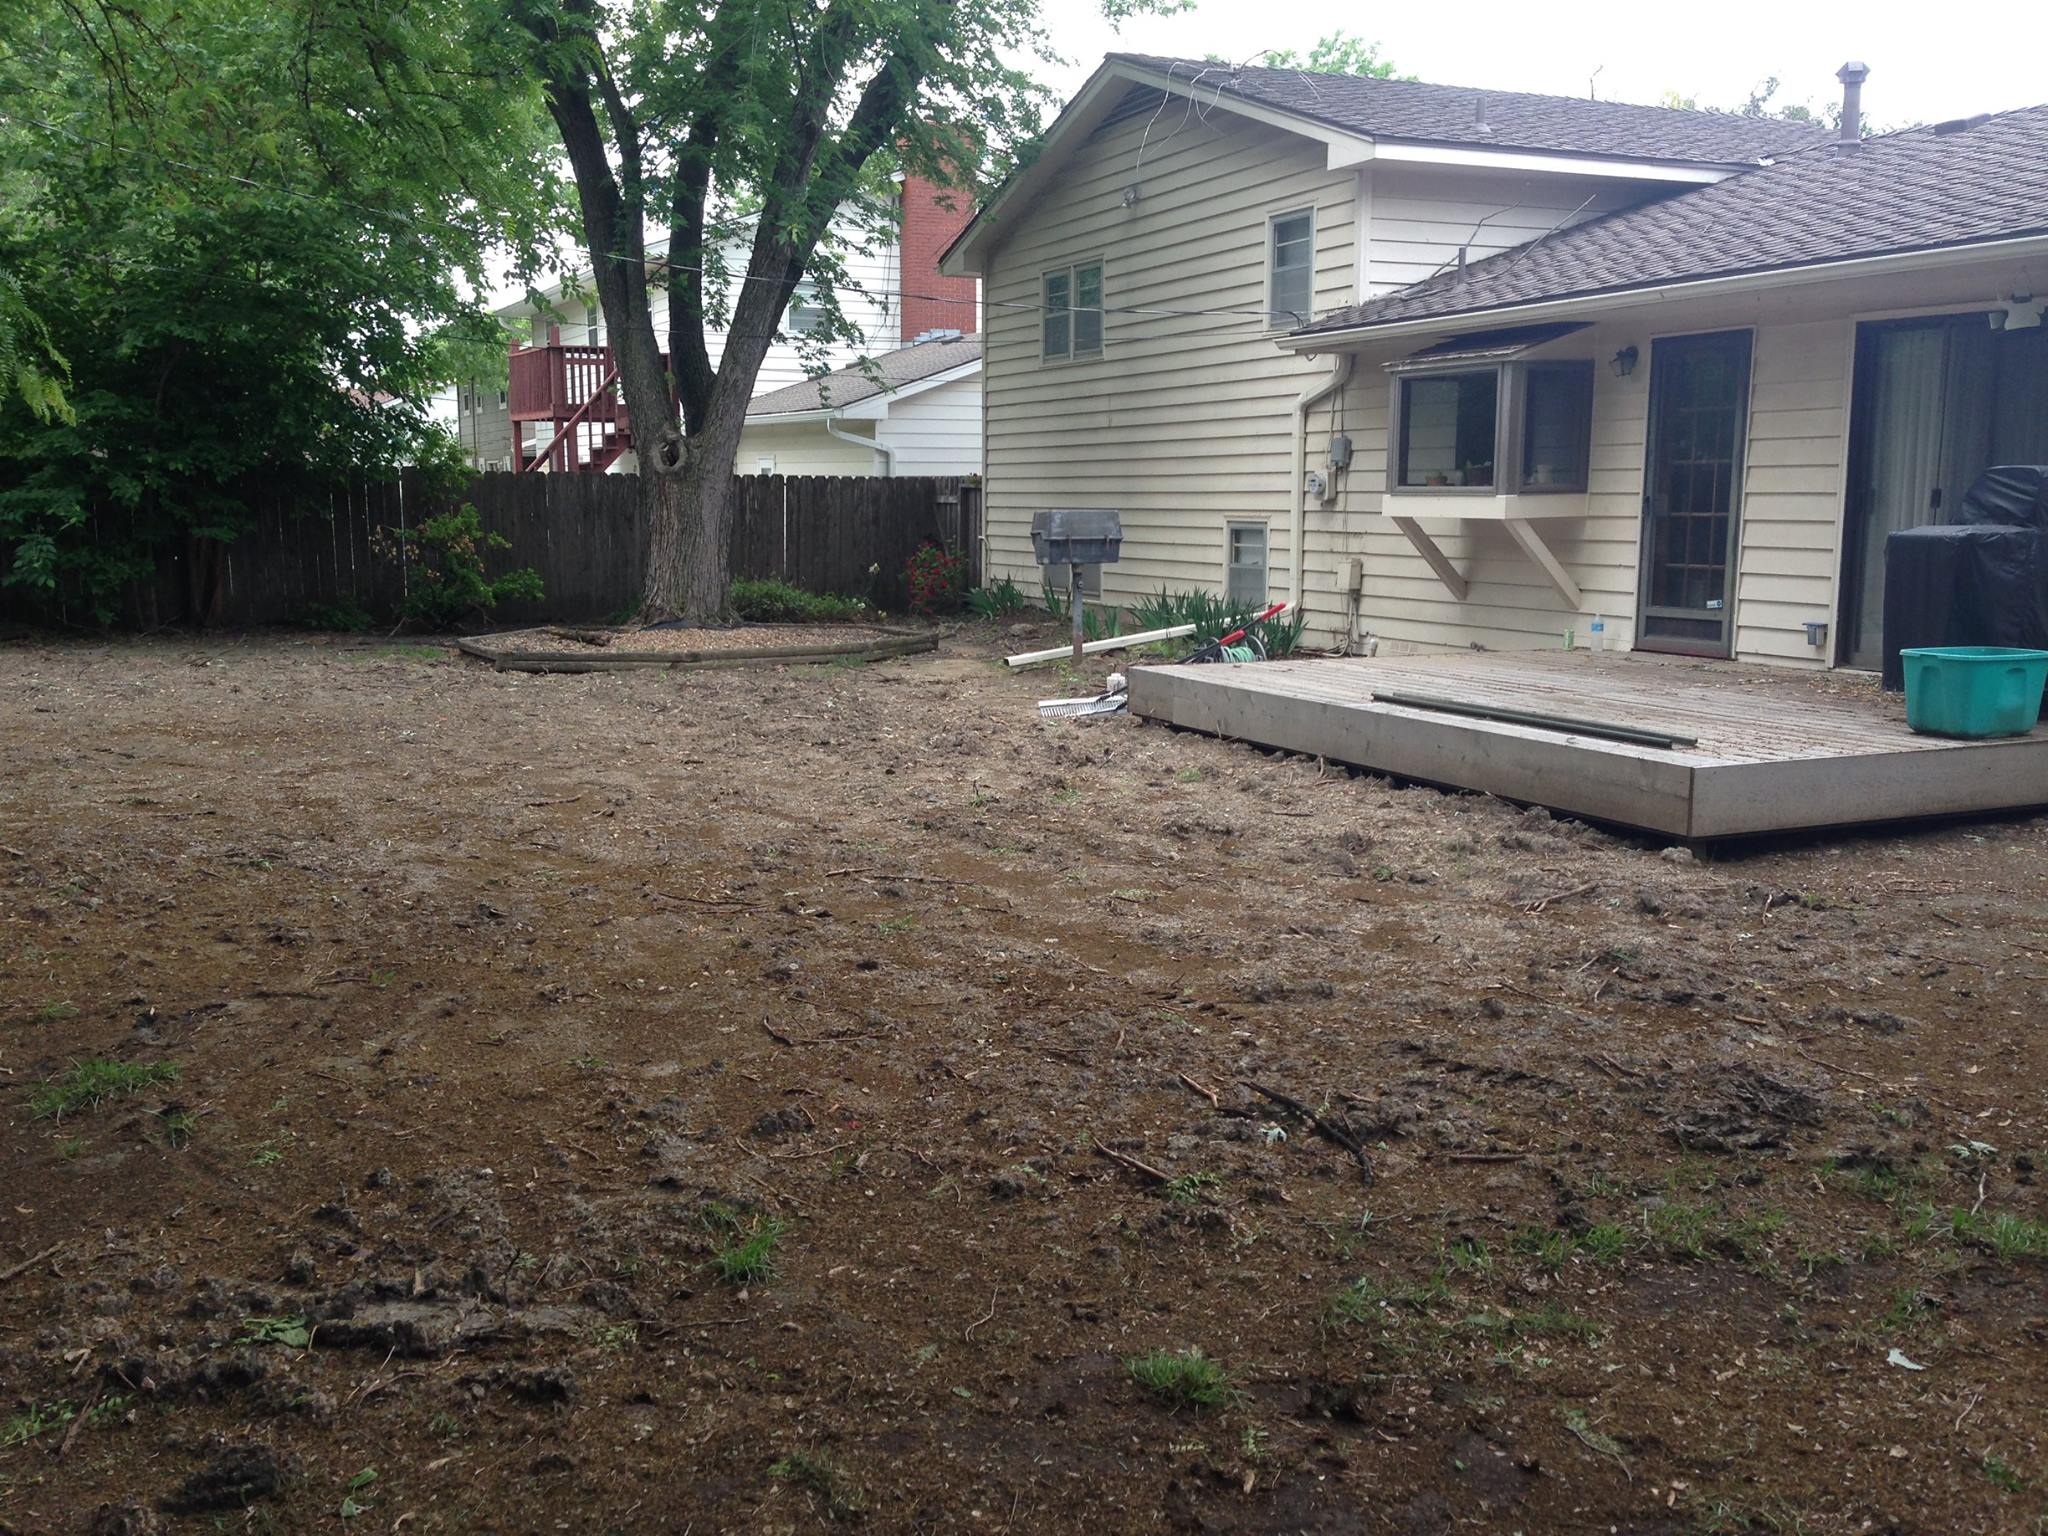 Popular Before Sod Sod Installation Sod Sod Services Wml How To Grade A Yard A Patio How To Grade A Yard A Skid Steer houzz-02 How To Grade A Yard